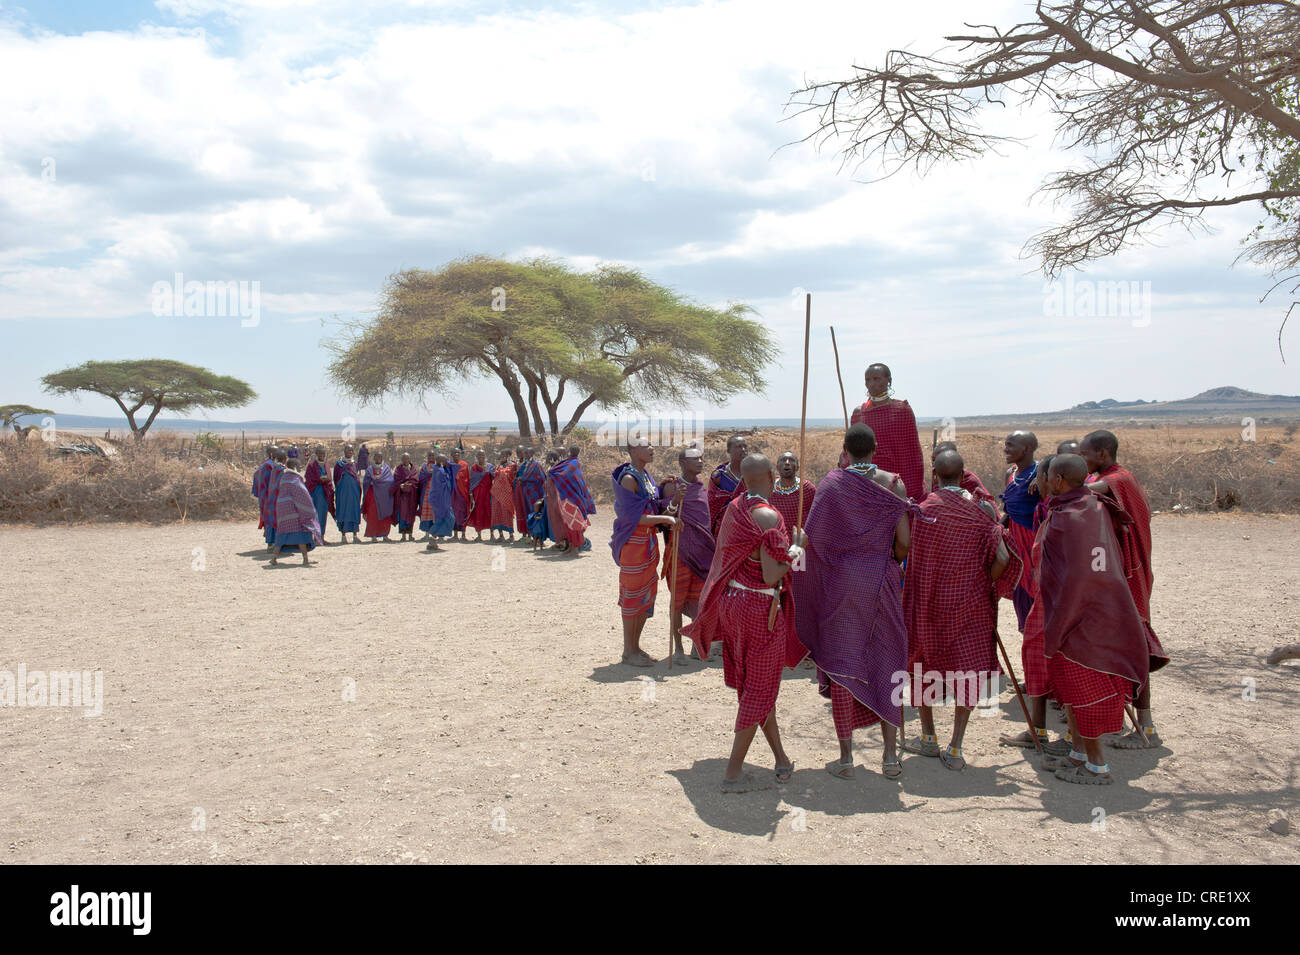 Ethnology, group of women, group of men, man jumping while dancing, Masai, village of Kiloki, Savannah - Stock Image